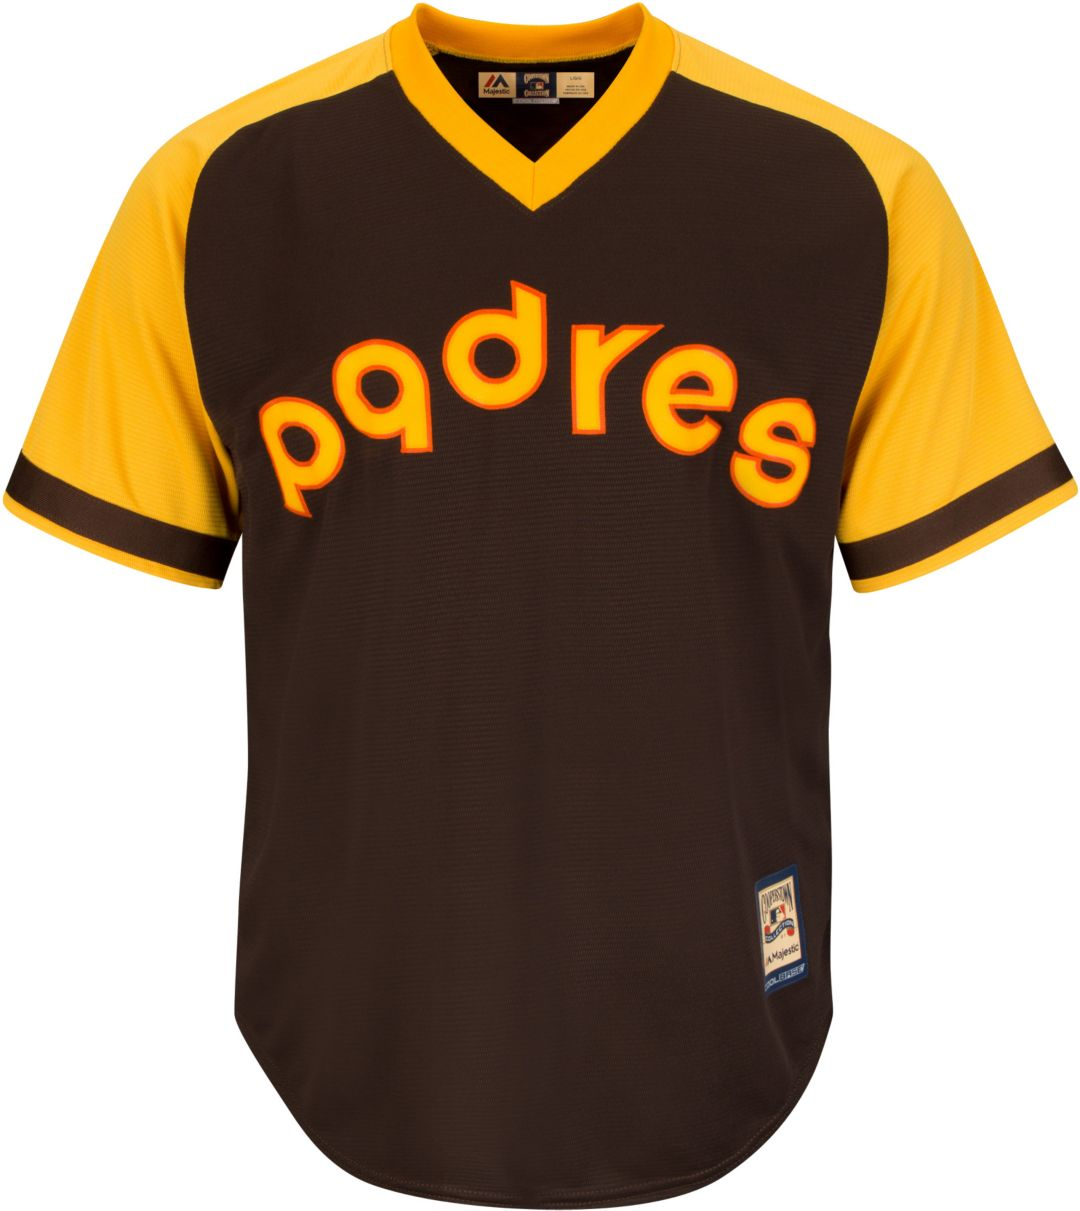 size 40 714db b469d Majestic Men's Replica San Diego Padres Tony Gwynn Cool Base Brown  Cooperstown Jersey